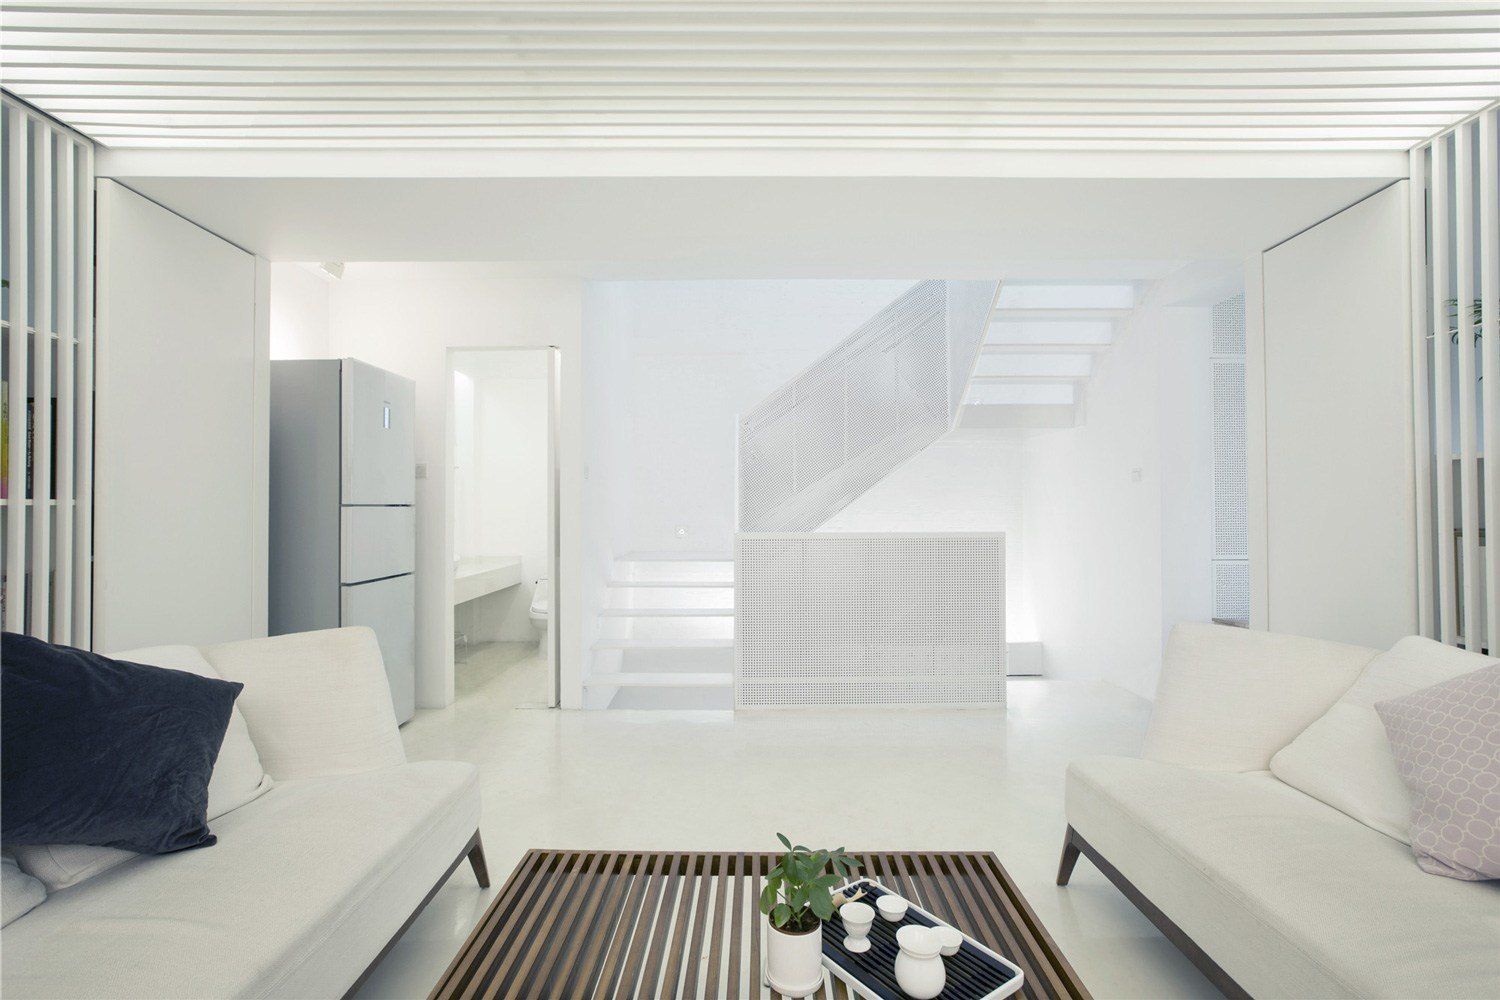 White House by Arch Studio  Photo 2 of 10 in How to Bring Light Into Dark Spaces